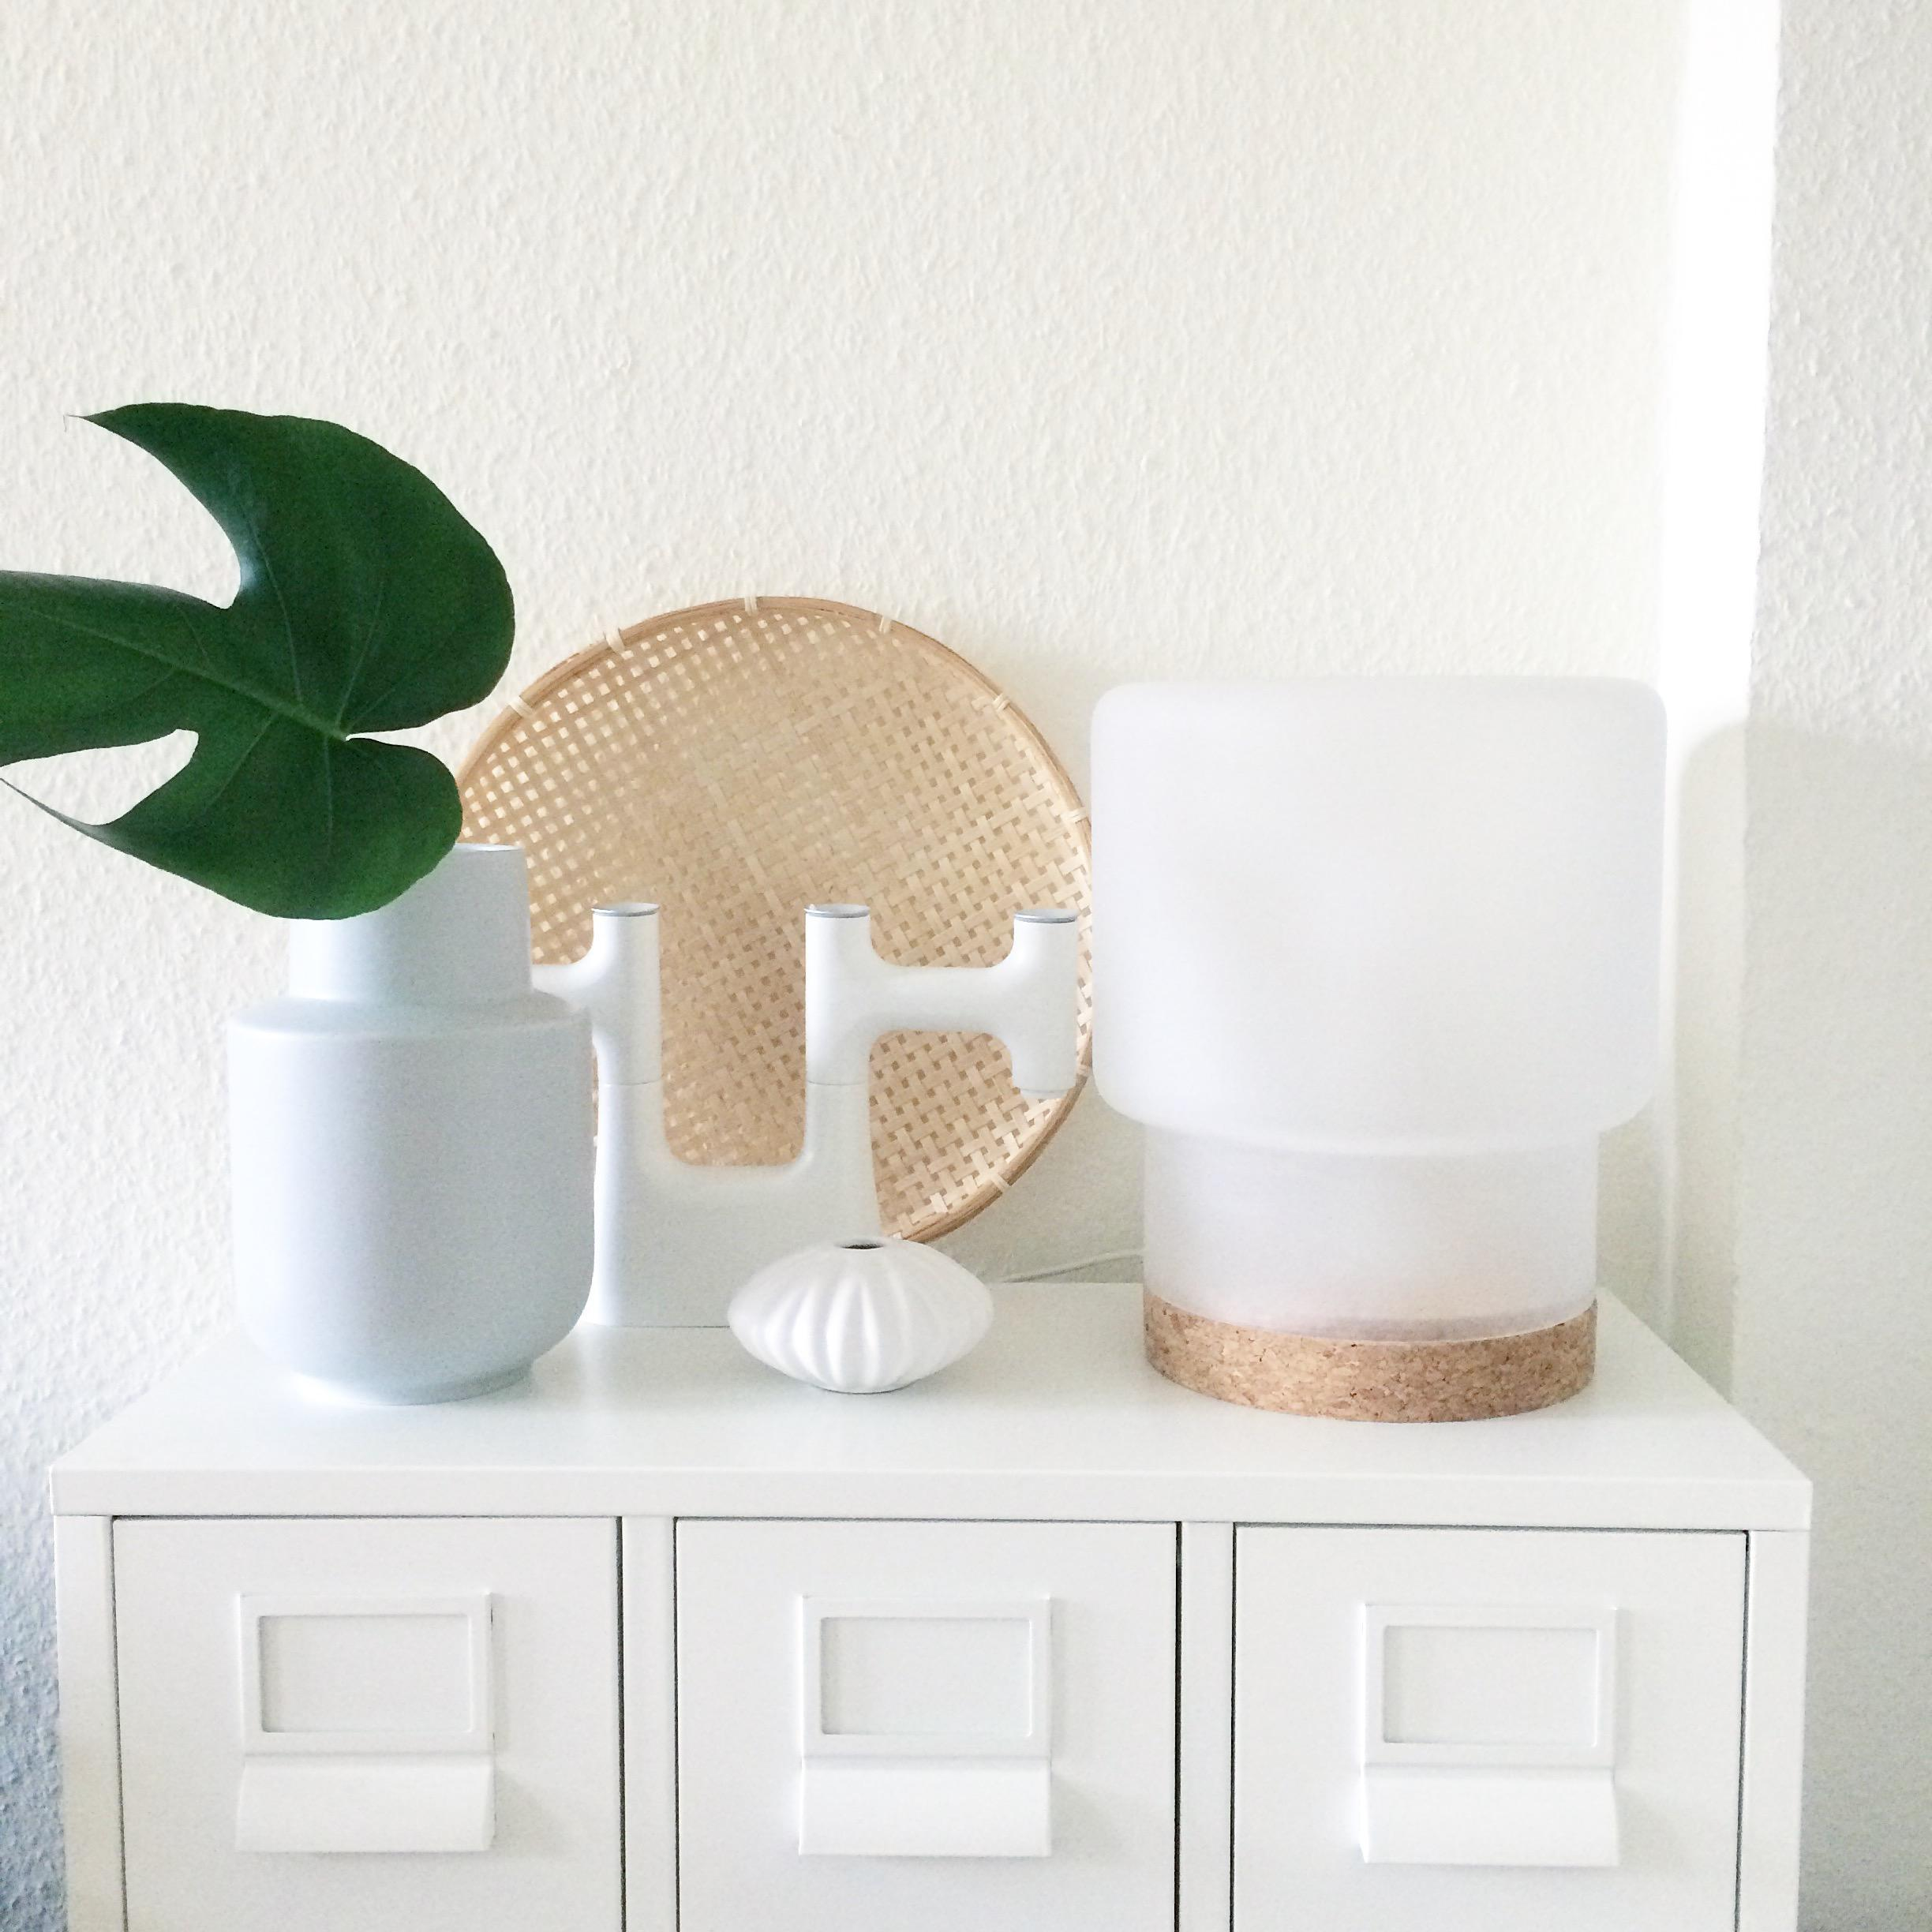 Detailverliebt #livingroom #decoration #monstera #ikea #interiordesign